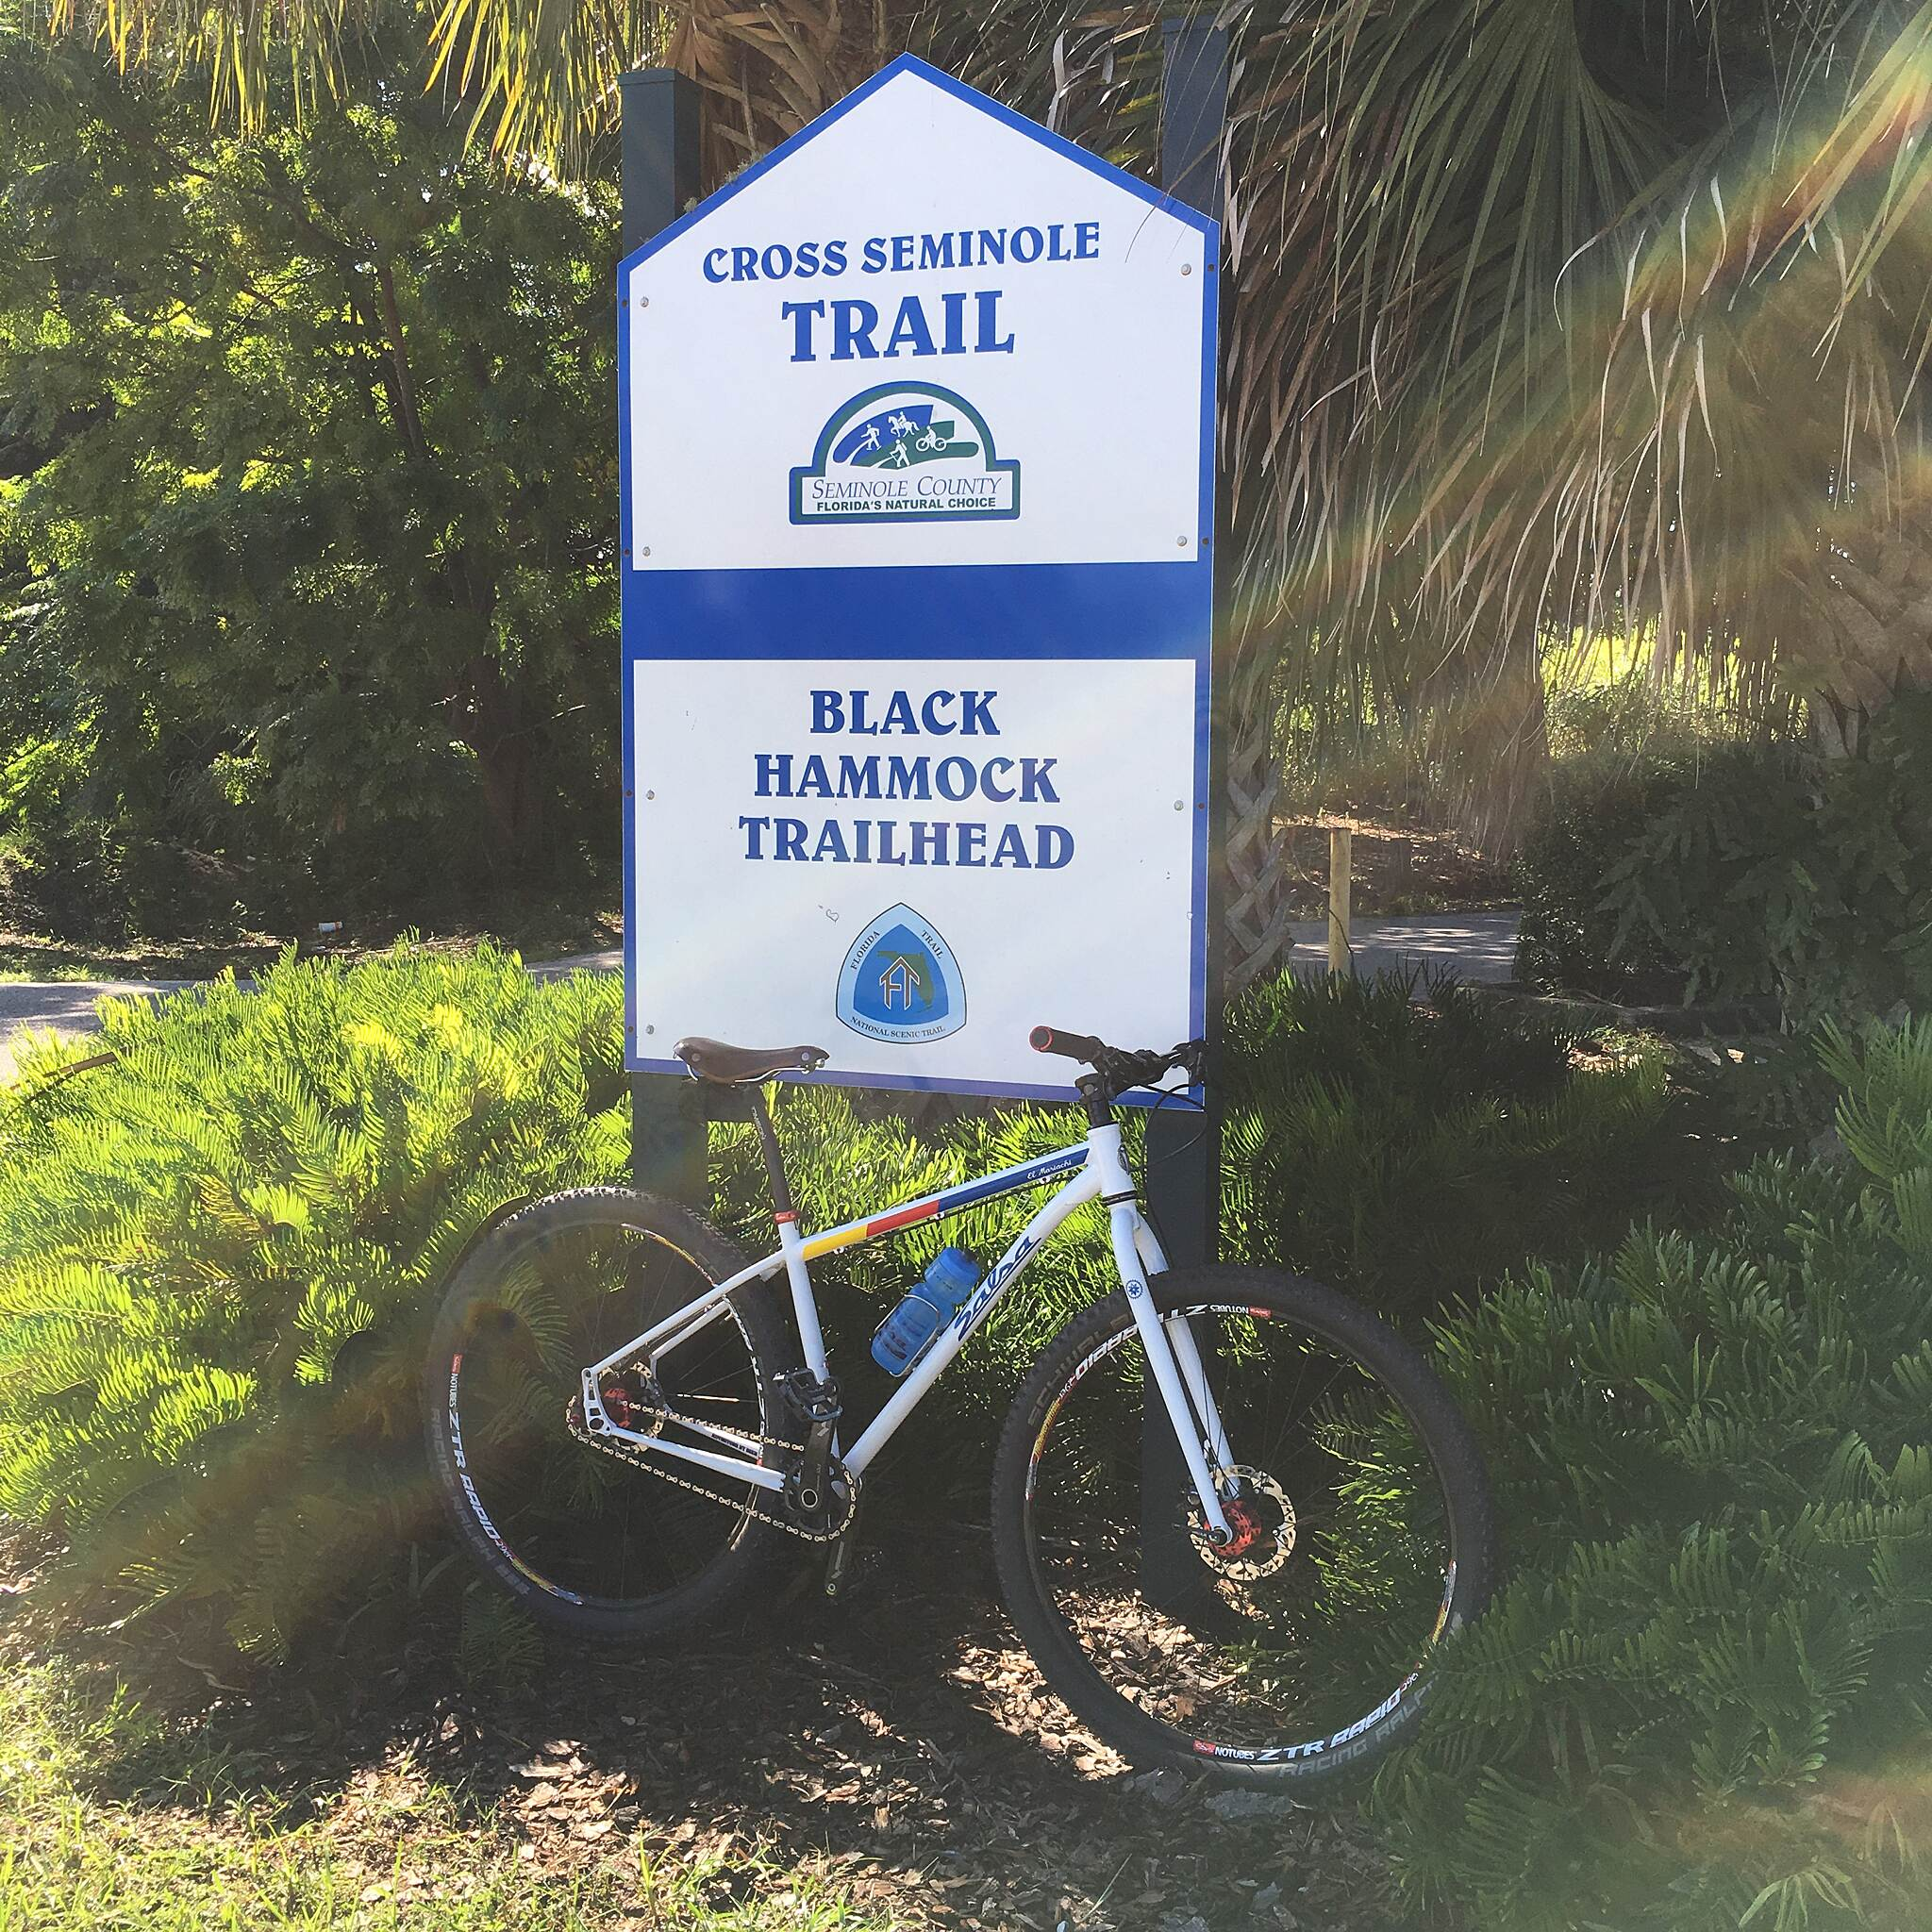 Cross Seminole Trail Cross Seminole Trail